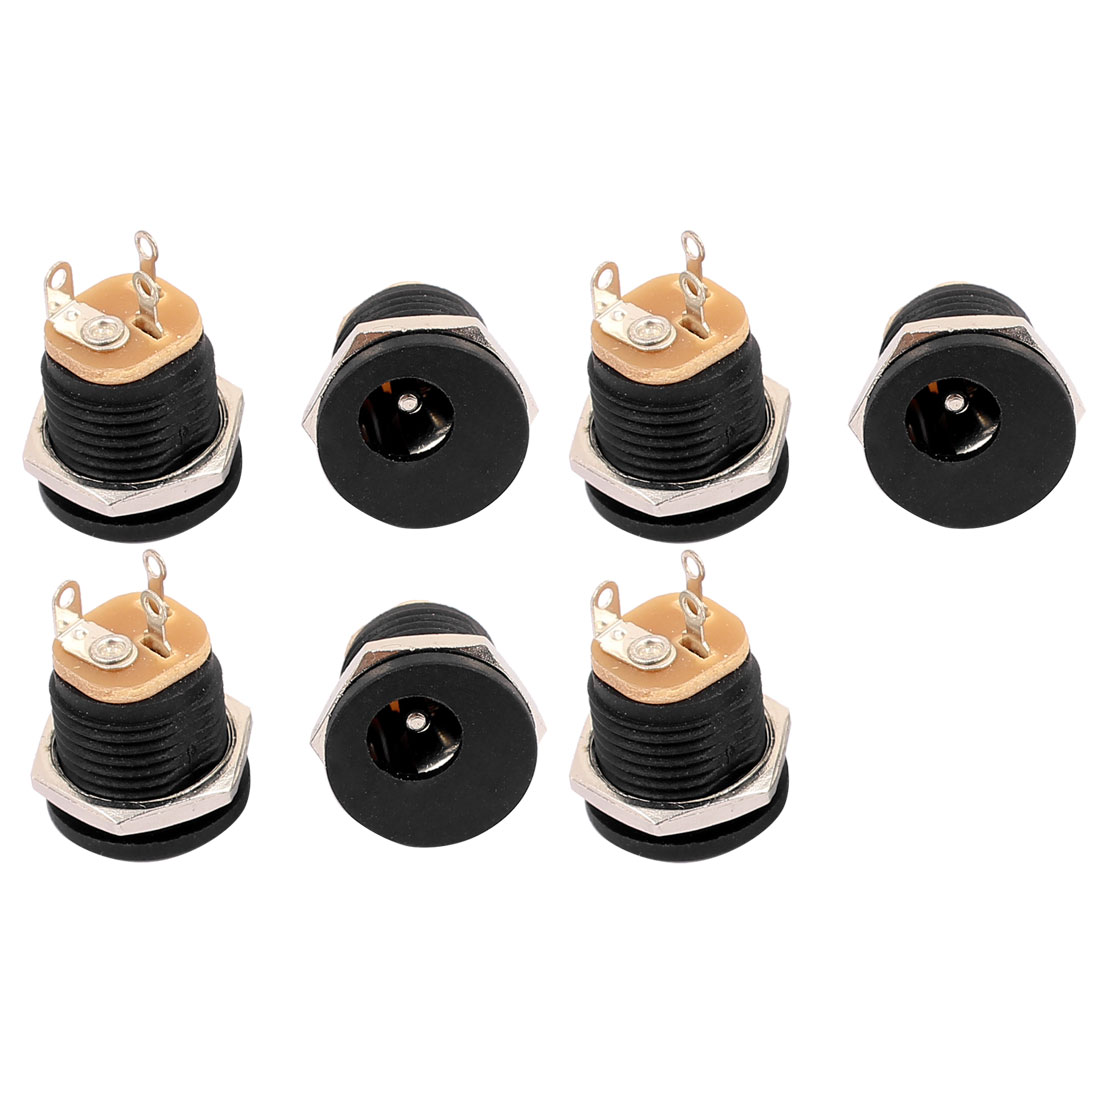 7Pcs 5.5x2.1mm DC Power Supply Jack Socket Outlet Female Panel Mount Connector Adapter